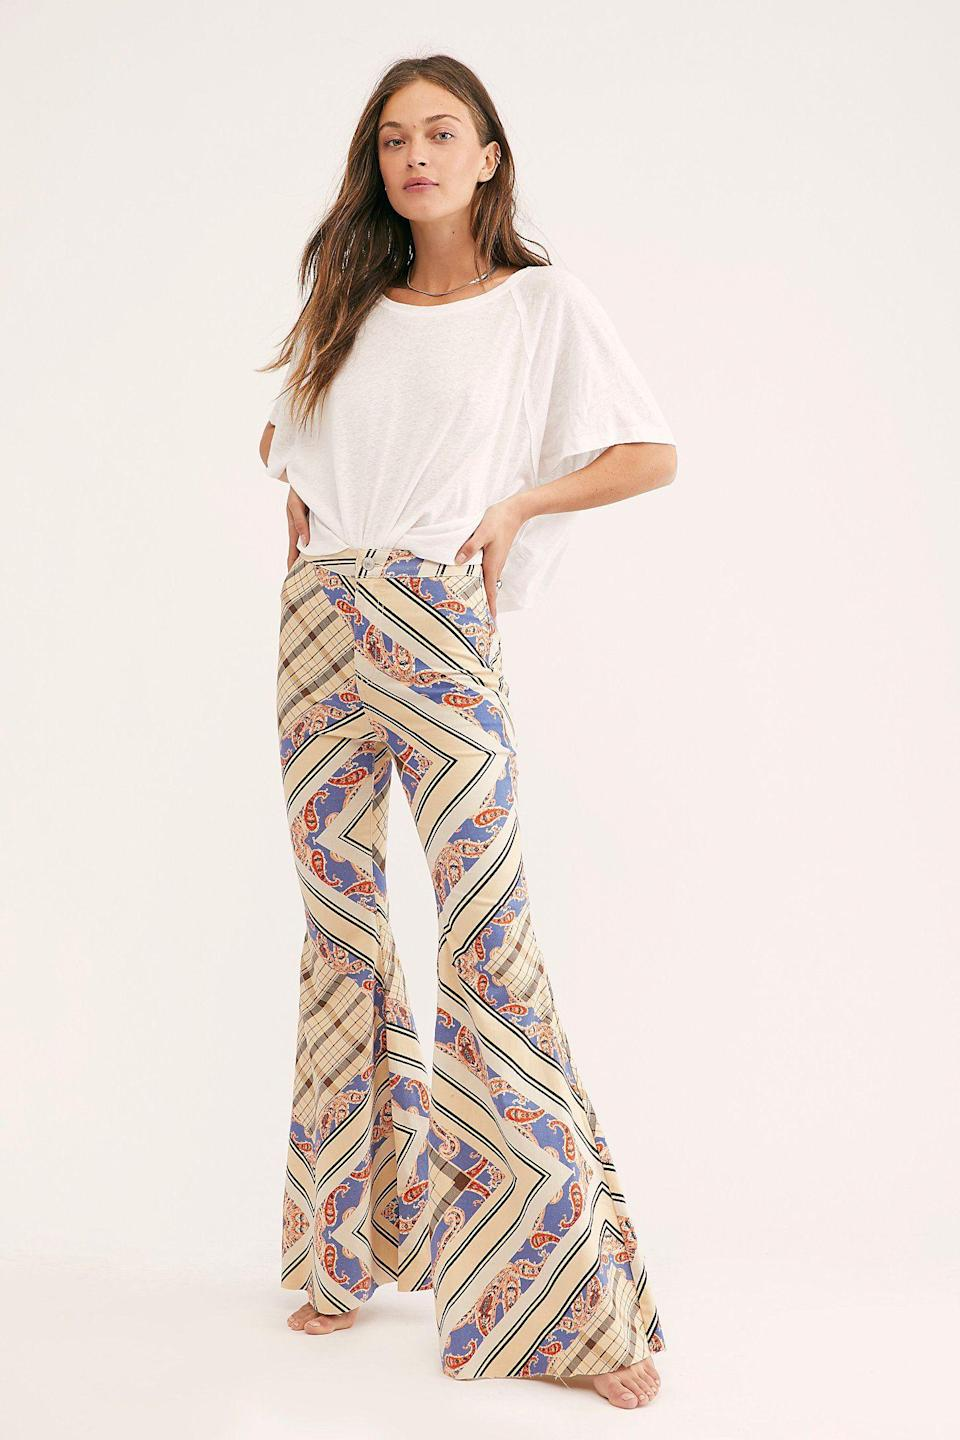 """<p><strong>We The Free</strong></p><p>freepeople.com</p><p><strong>$98.00</strong></p><p><a href=""""https://go.redirectingat.com?id=74968X1596630&url=https%3A%2F%2Fwww.freepeople.com%2Fshop%2Fjust-float-on-printed-flare-jeans%2F&sref=https%3A%2F%2Fwww.goodhousekeeping.com%2Fholidays%2Fhalloween-ideas%2Fg27952017%2Fbest-hippie-halloween-costume-ideas%2F"""" rel=""""nofollow noopener"""" target=""""_blank"""" data-ylk=""""slk:Shop Now"""" class=""""link rapid-noclick-resp"""">Shop Now</a></p><p>These flare jeans come in 10 different prints so you can find the one that not only fits your costume, but also one that you'll wear again. </p>"""